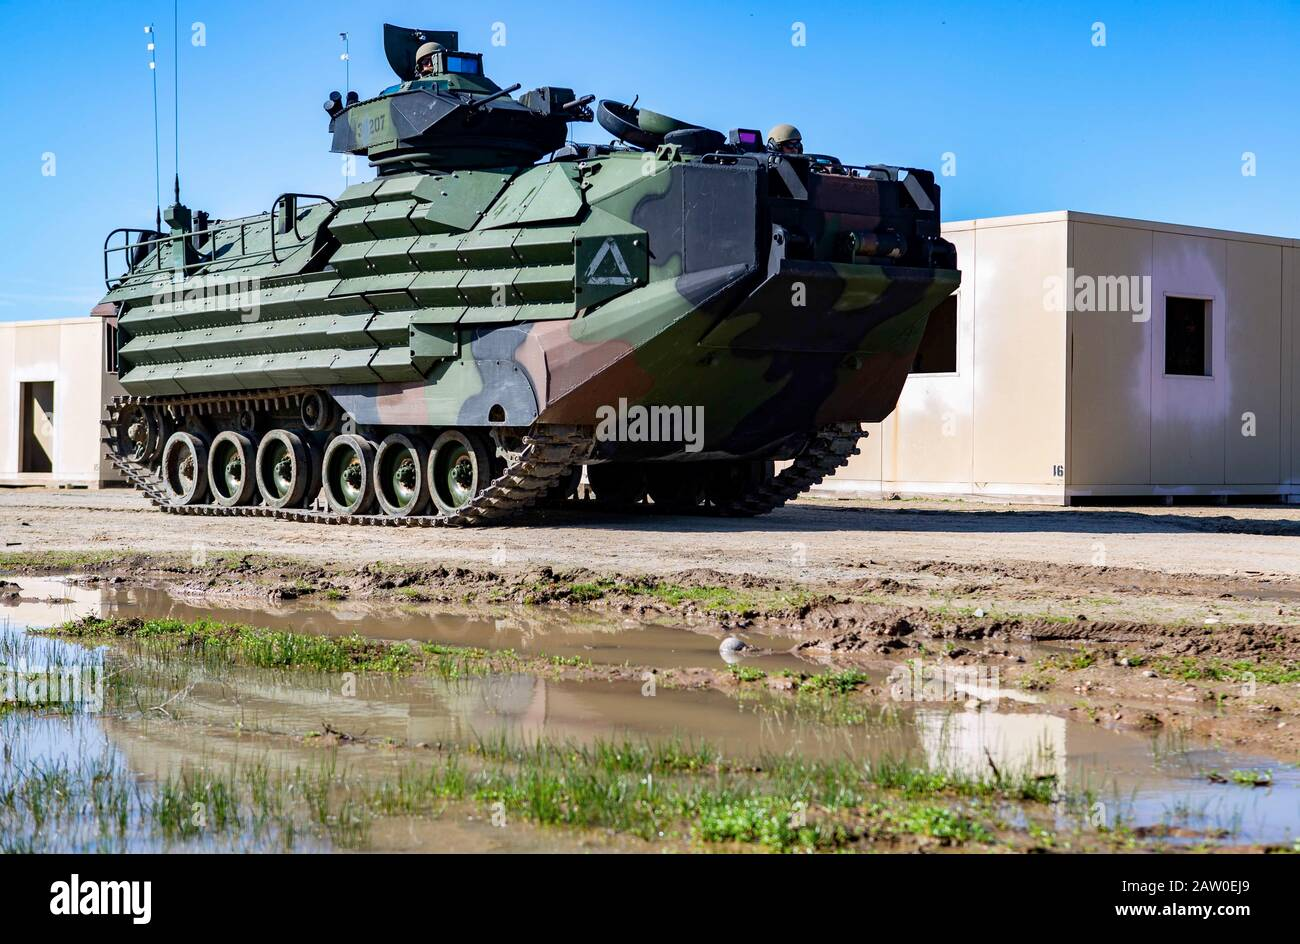 Assault Amphibian Vehicle Stock Photos Assault Amphibian Vehicle